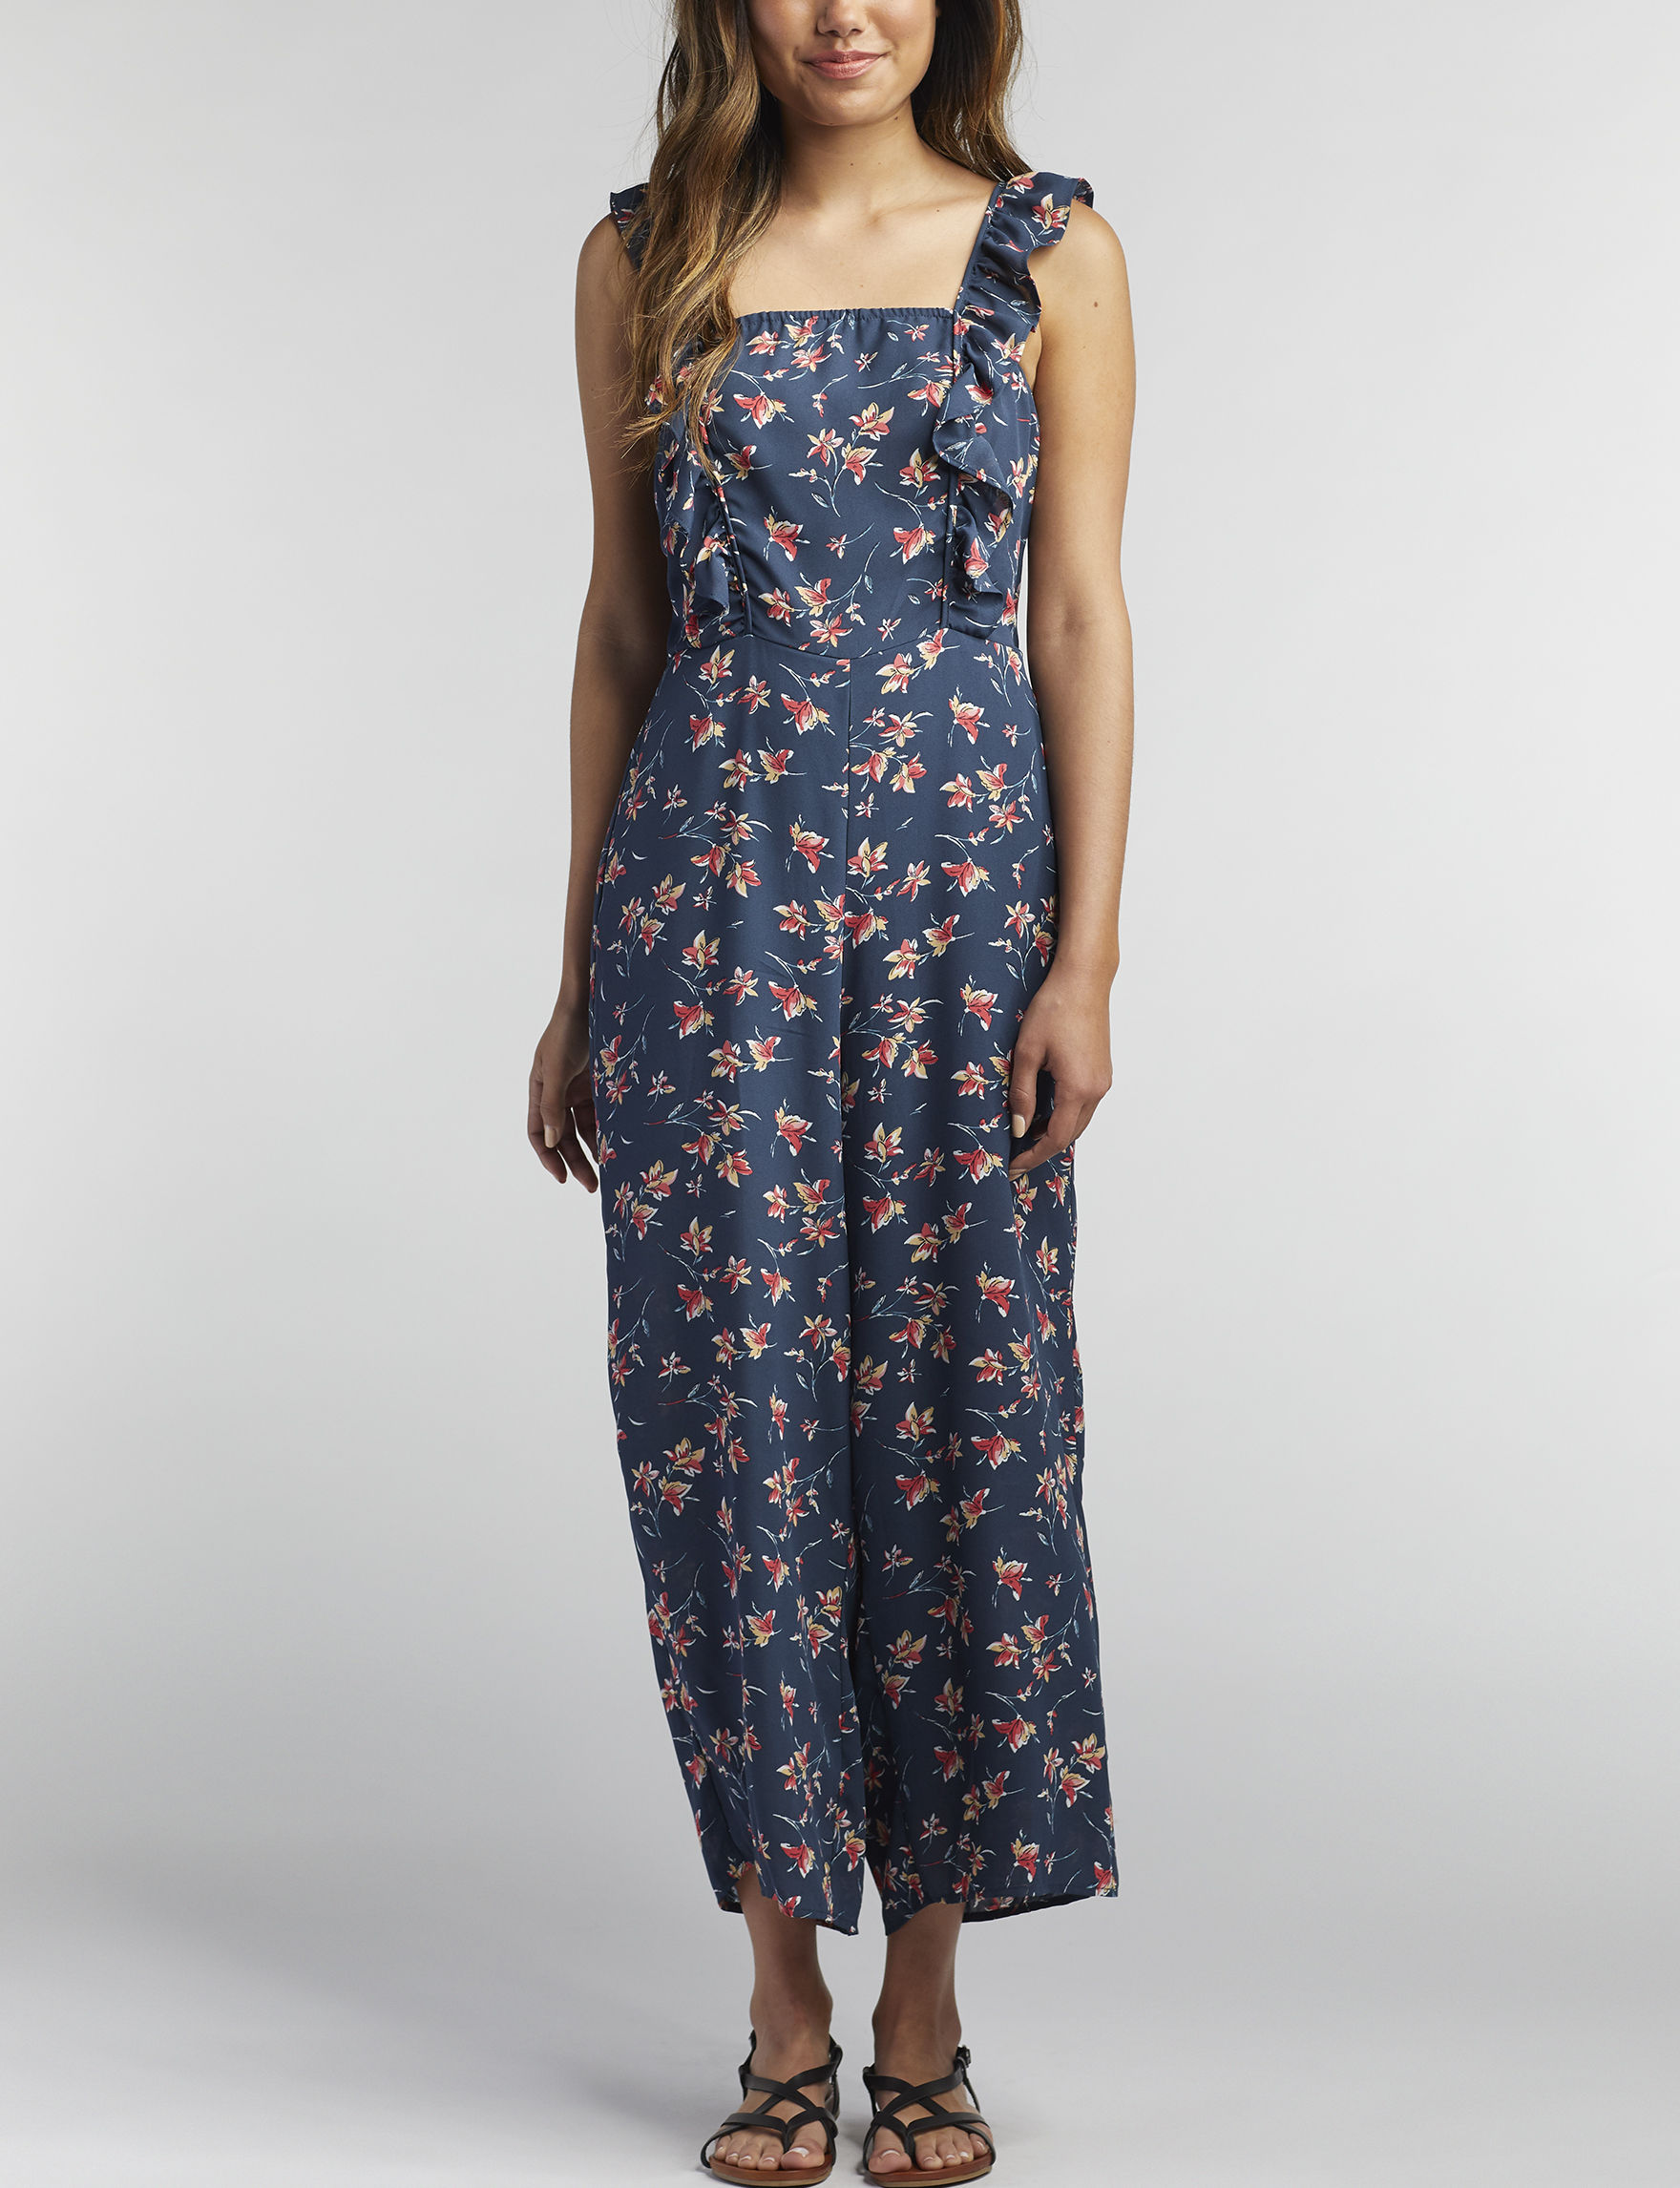 Wishful Park Navy Floral Evening & Formal Everyday & Casual